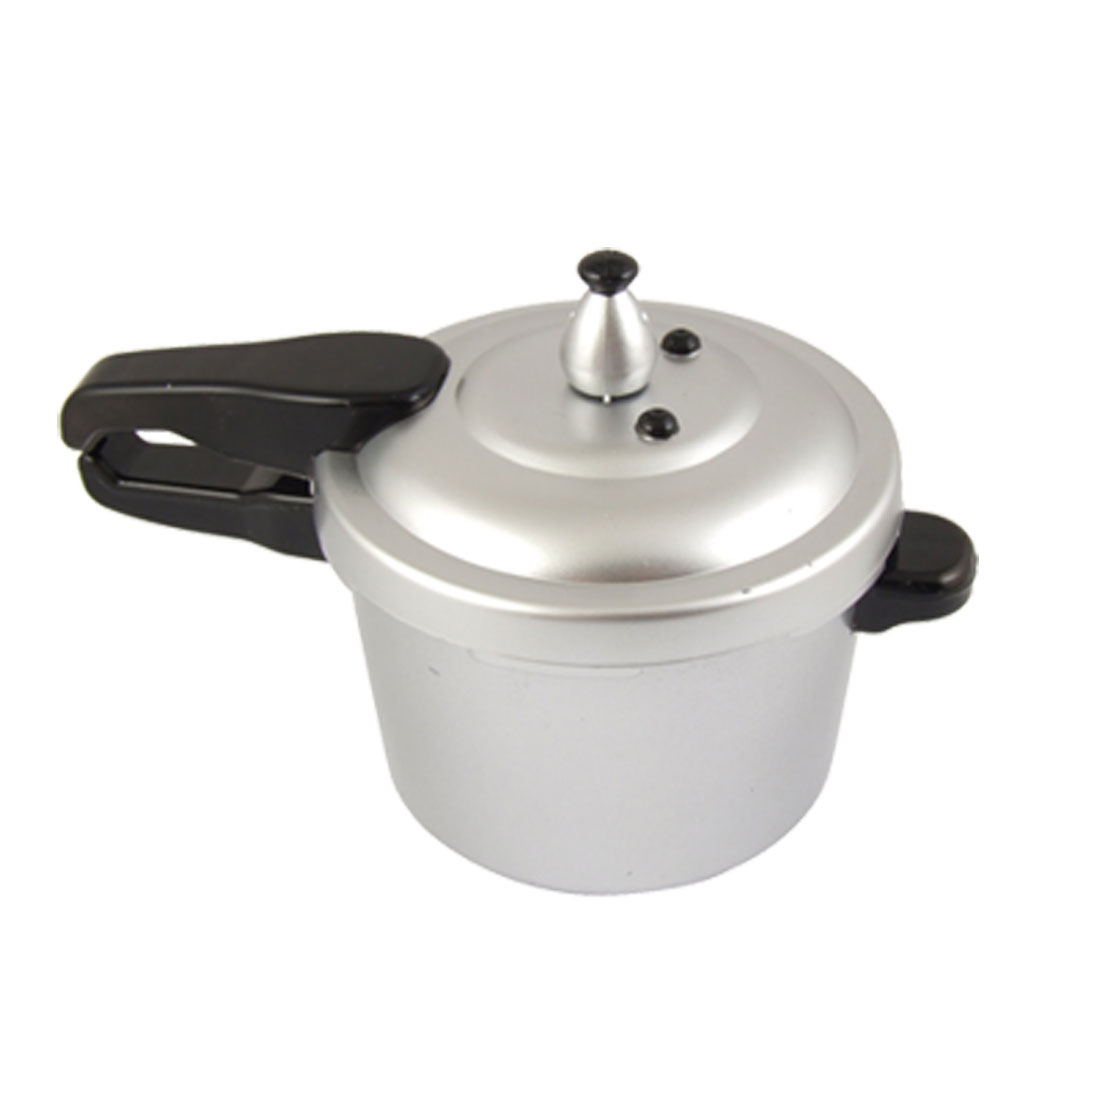 Plastic Pressure Cooker Design Coin Saving Box Silver Tone Black